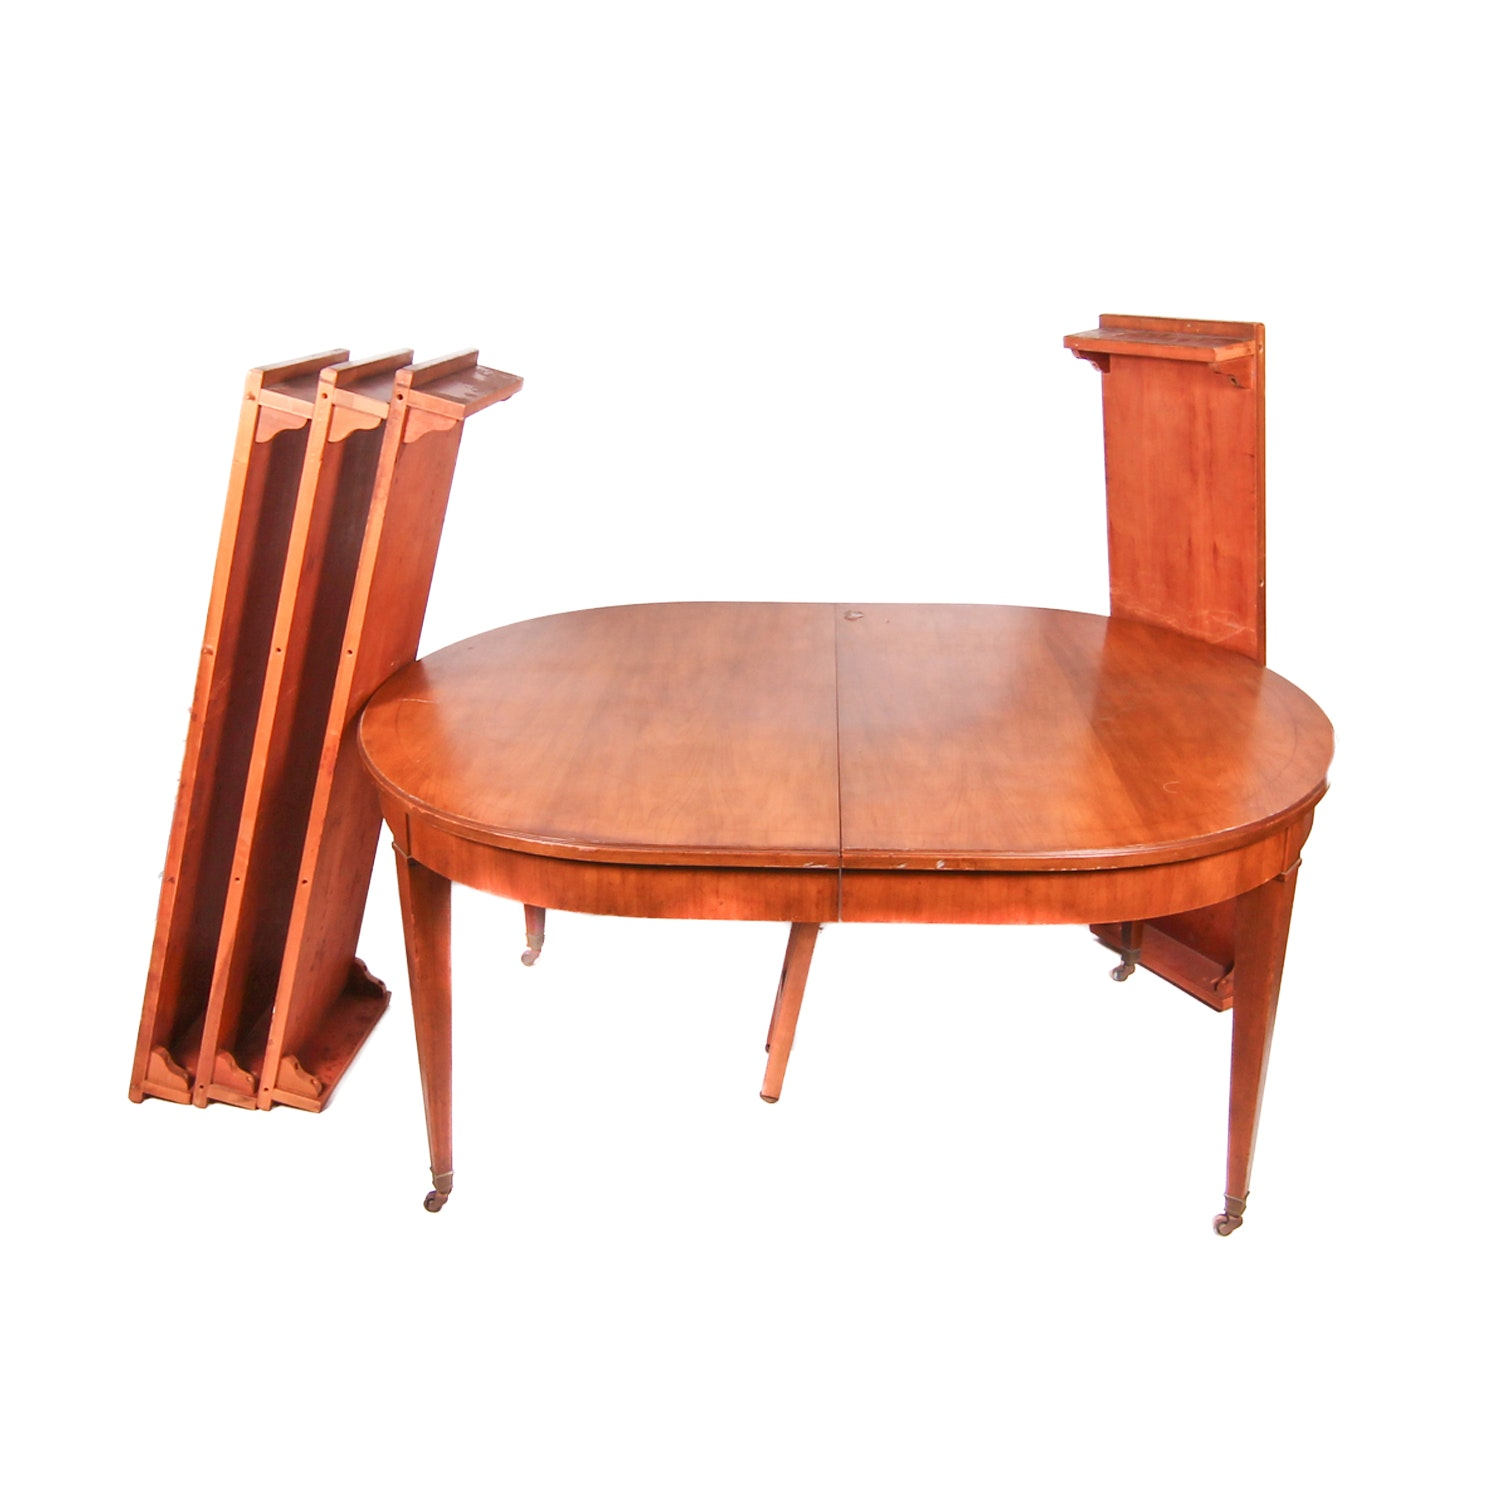 Traditional Style Oval Cherry Table